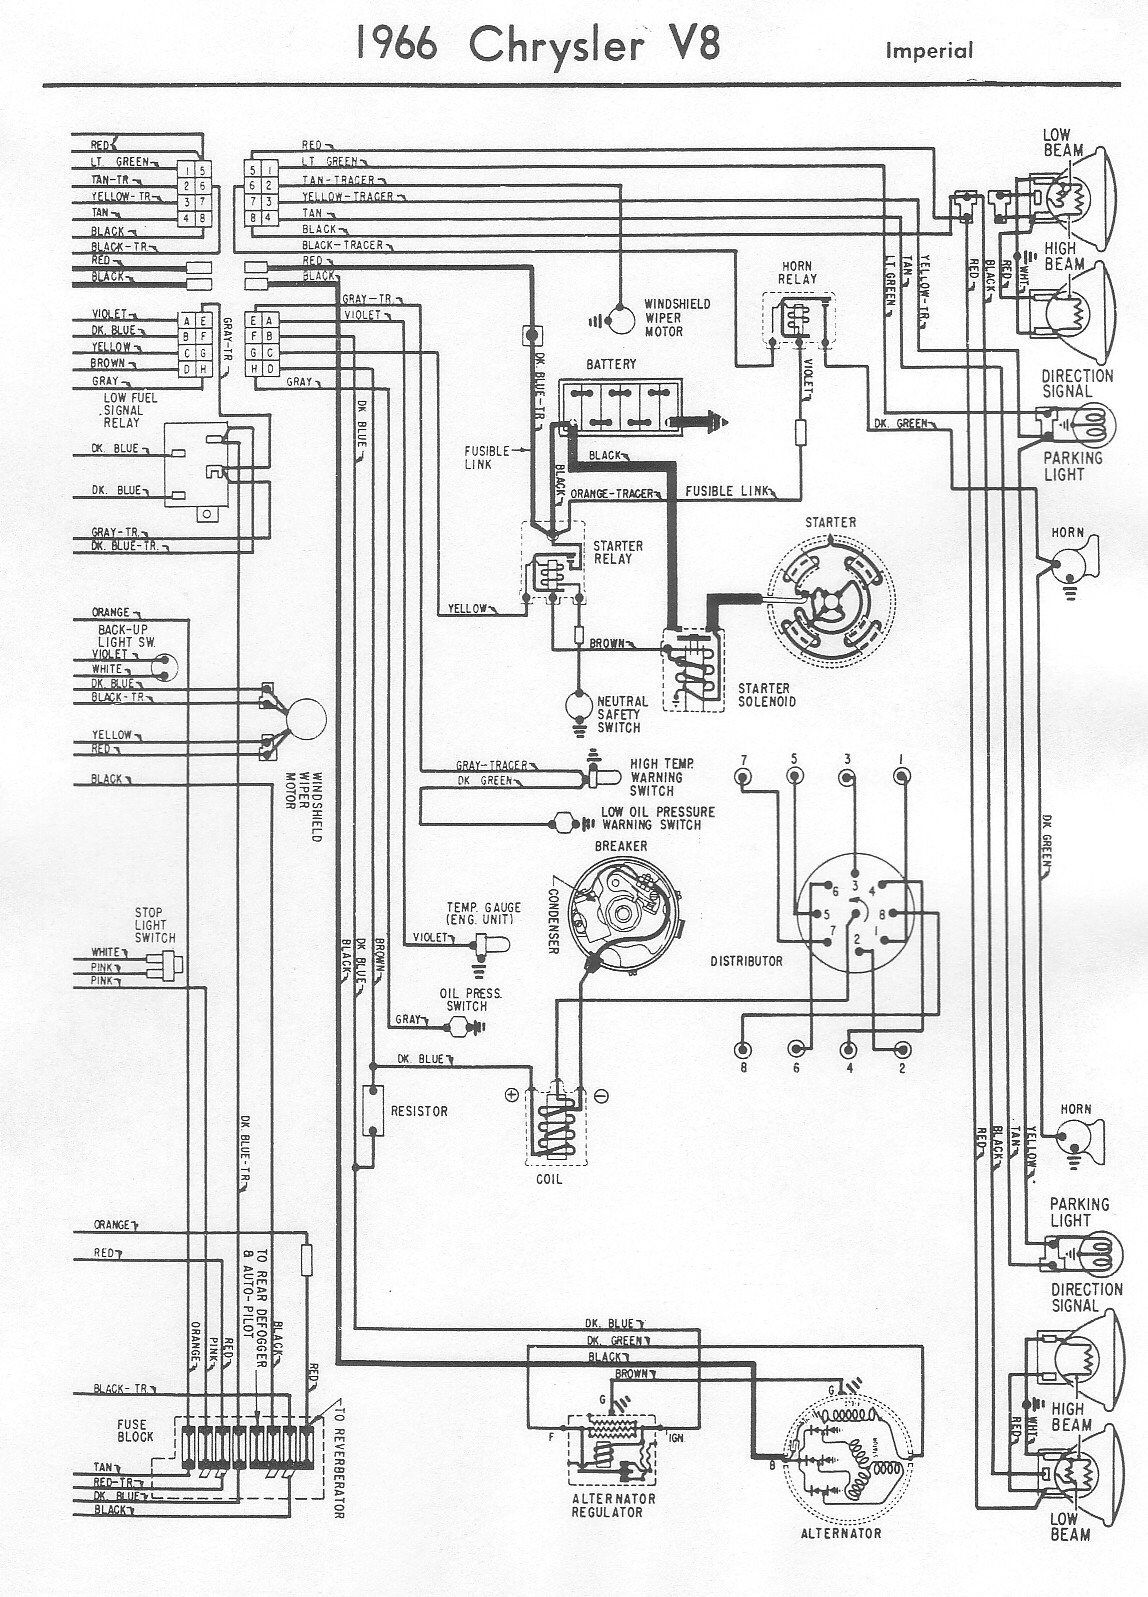 1967 Gtx Wiring Diagram - Simple Wiring Diagram Site  Impala Engine Compartment Wiring Diagram on 1967 impala wiper motor diagram, 1970 impala engine, 1970 impala wiper motor, 1970 impala tachometer, 1970 impala frame, 1970 impala fuel gauge, 1970 chevelle fuse block diagram, 1970 impala brochure, 1970 mustang fuse box diagram, 1970 chevelle heating diagram, 1970 impala exhaust diagram, 1970 impala suspension diagram,